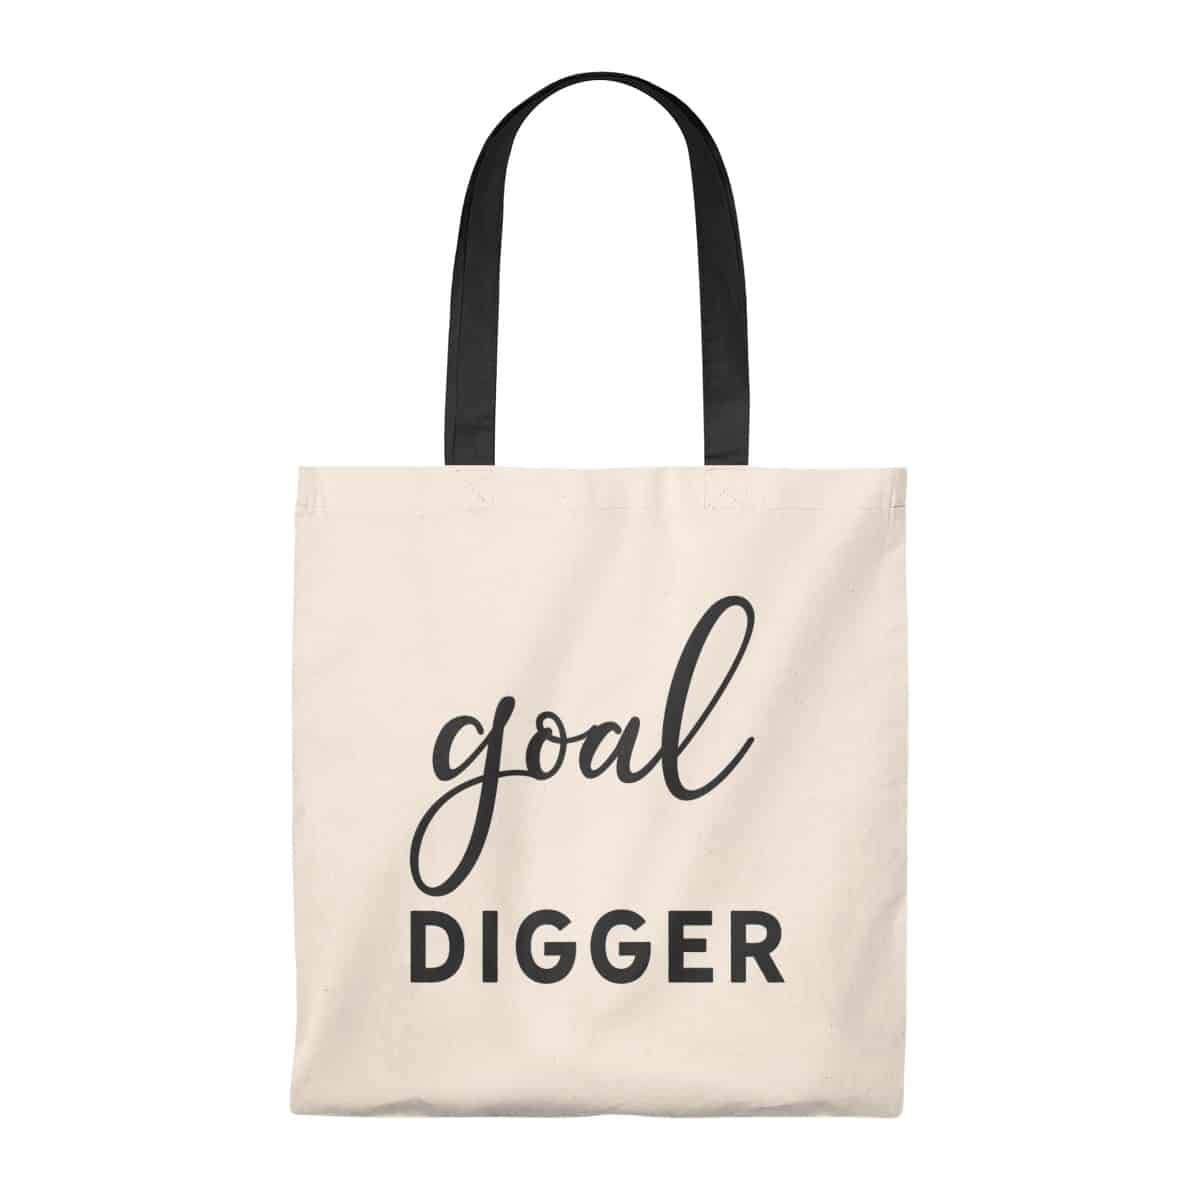 A Classic Vintage Tote Bag With Stylish Handle Multiple Colors And Printed